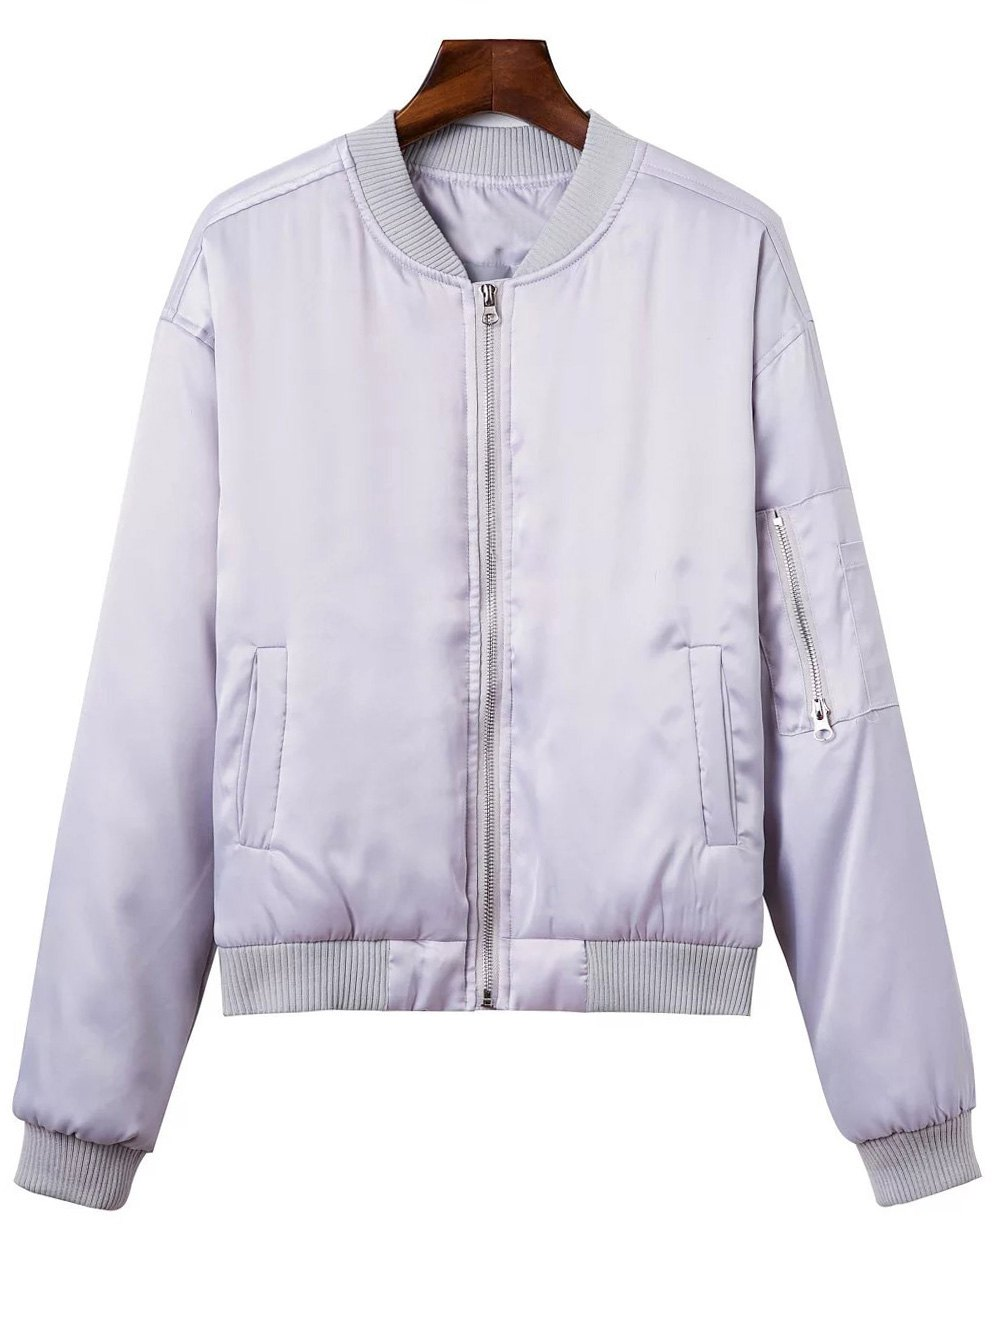 Zipped Windbreaker Jacket - SILVER M